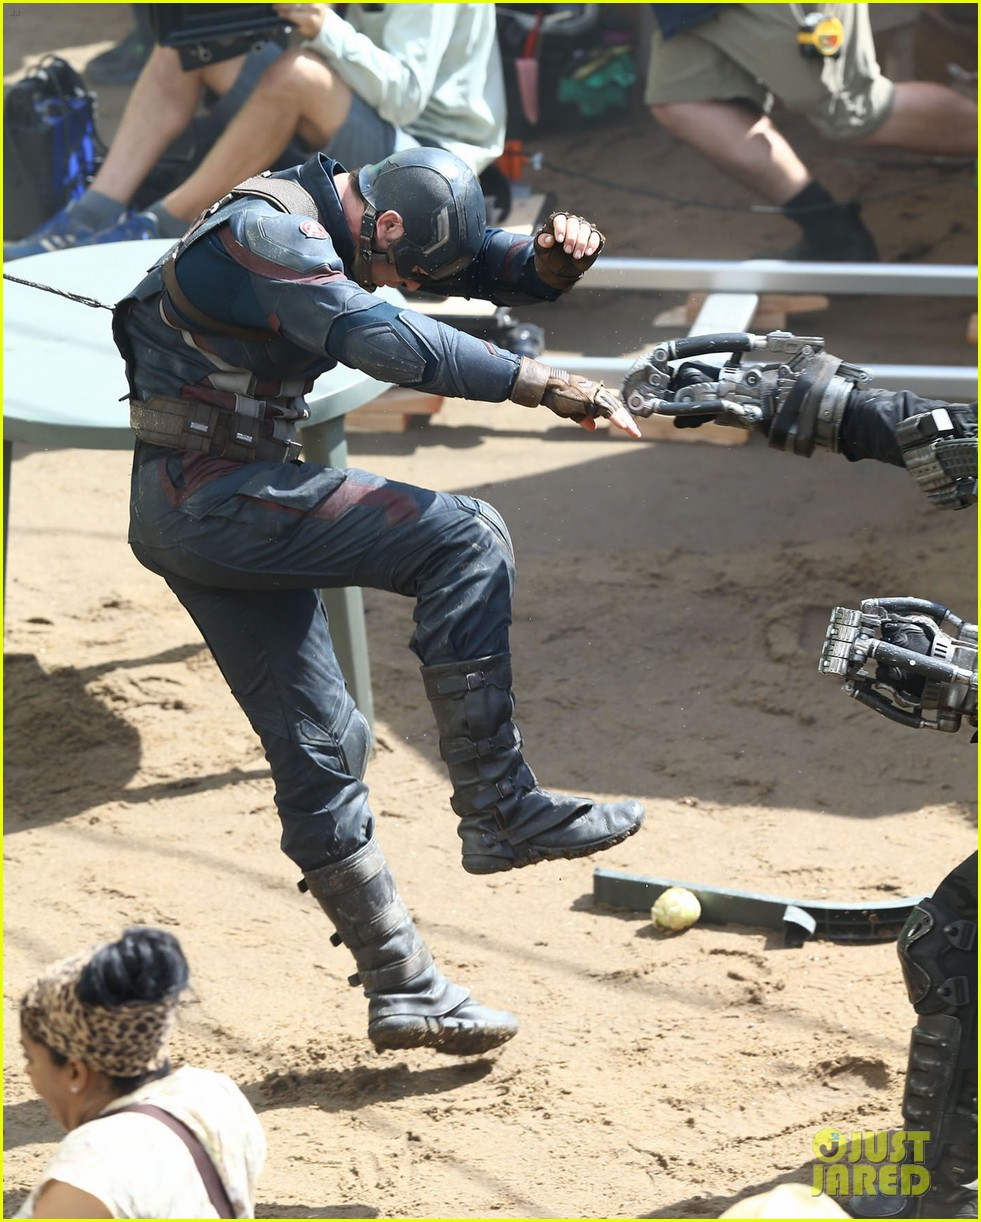 http://cdn01.cdn.justjared.com/wp-content/uploads/2015/05/cap-fight/captain-america-crossbones-fight-captain-america-civil-war-22.jpg